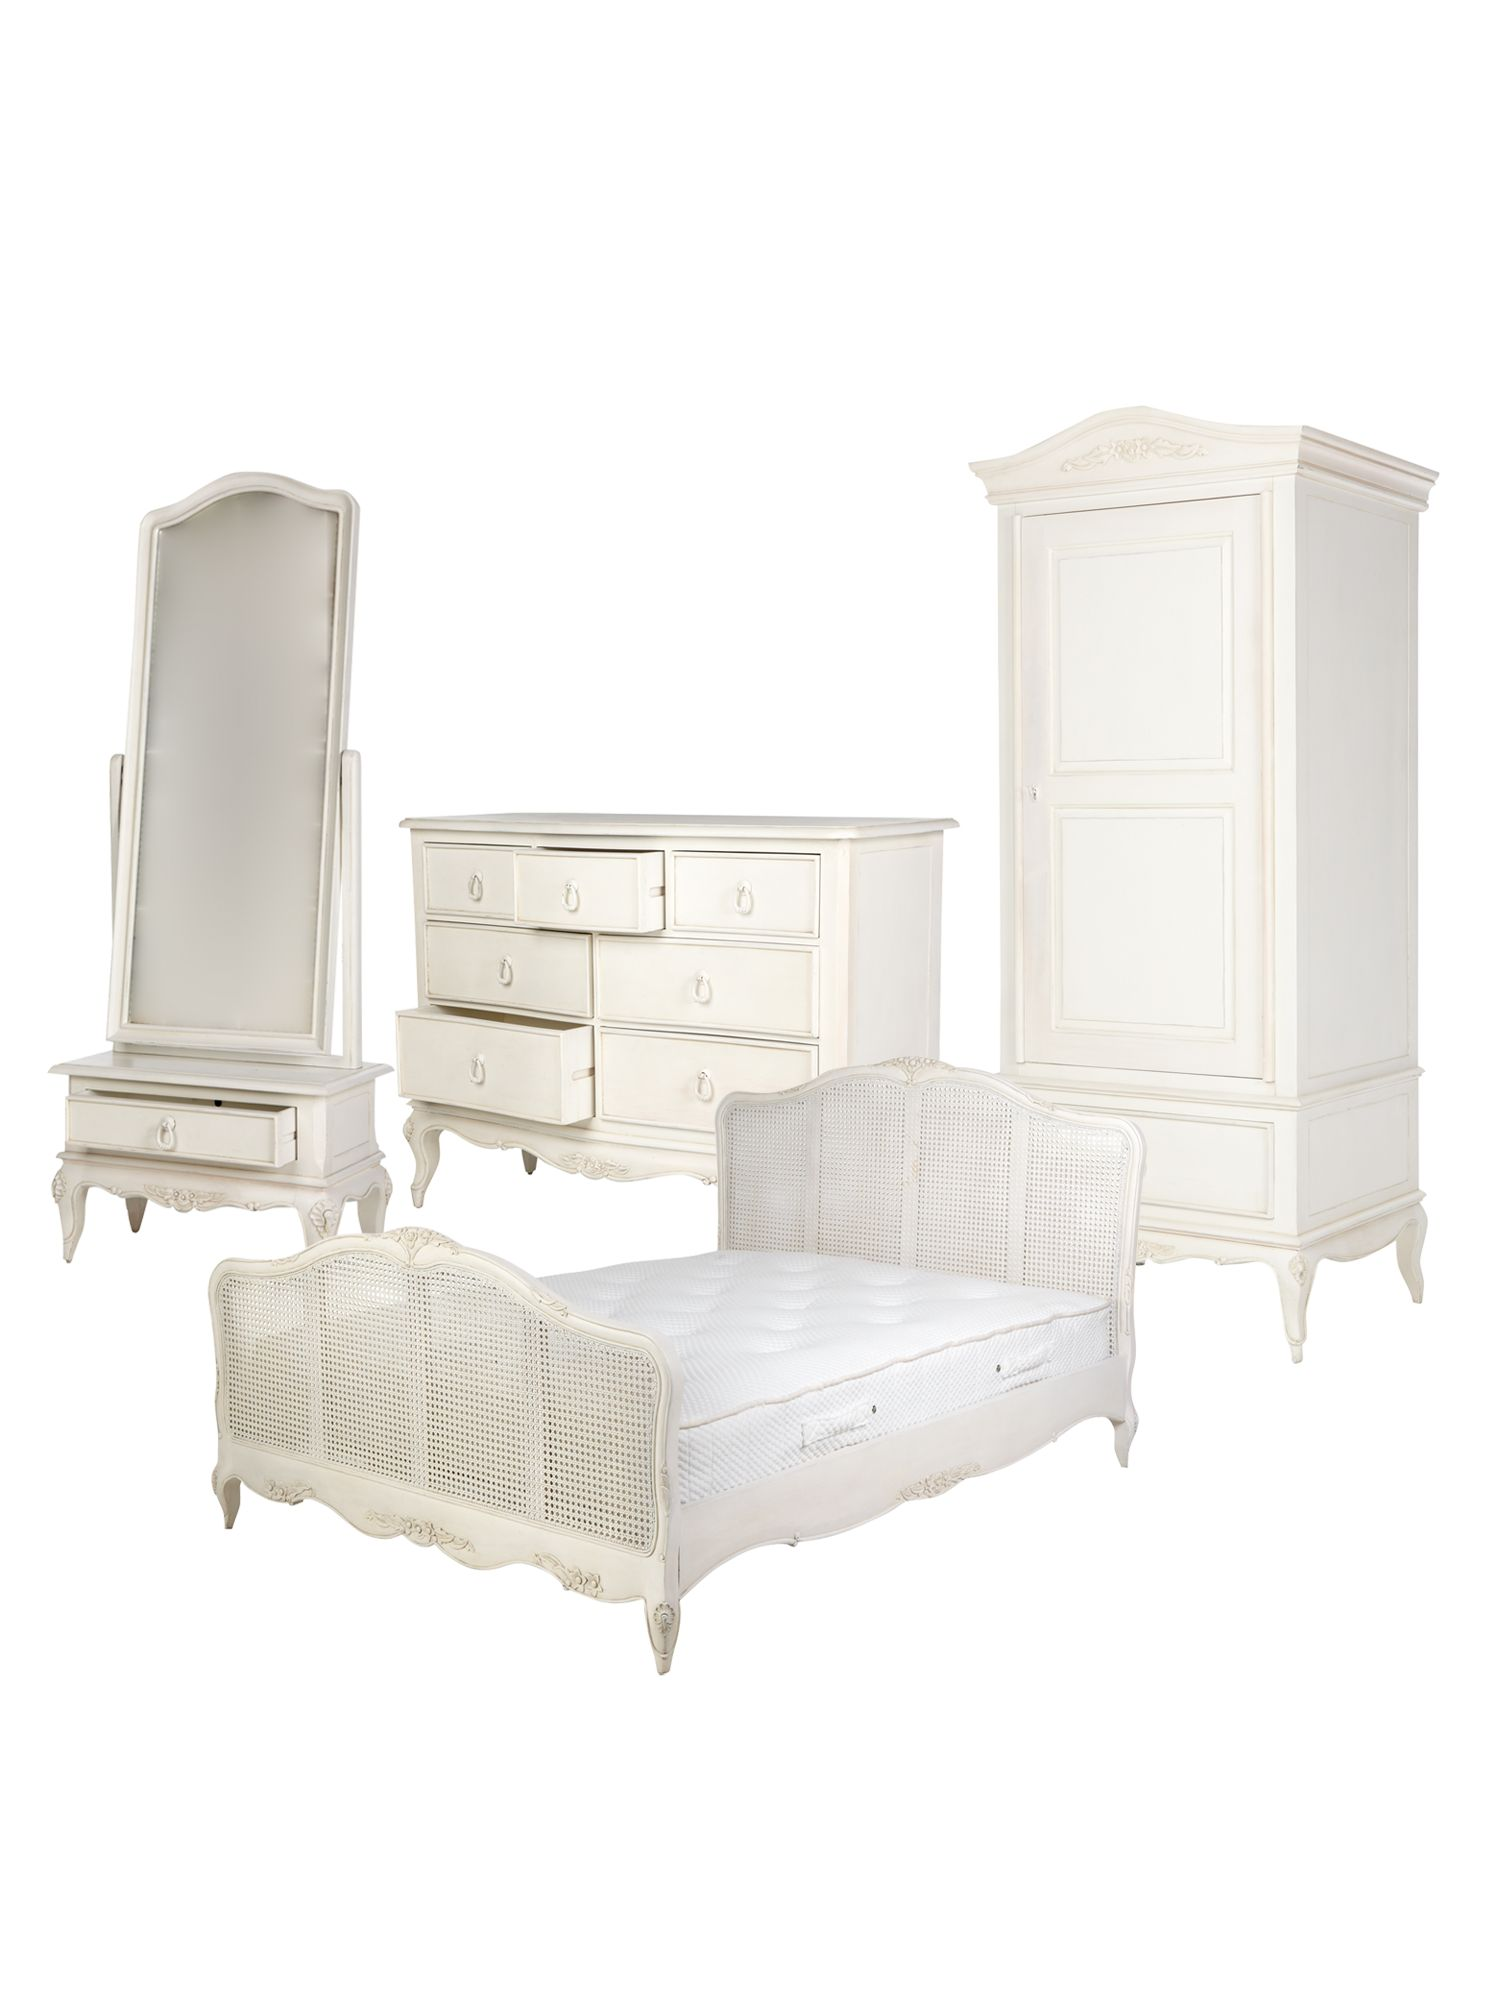 white furniture shabby chic. white furniture shabby chic